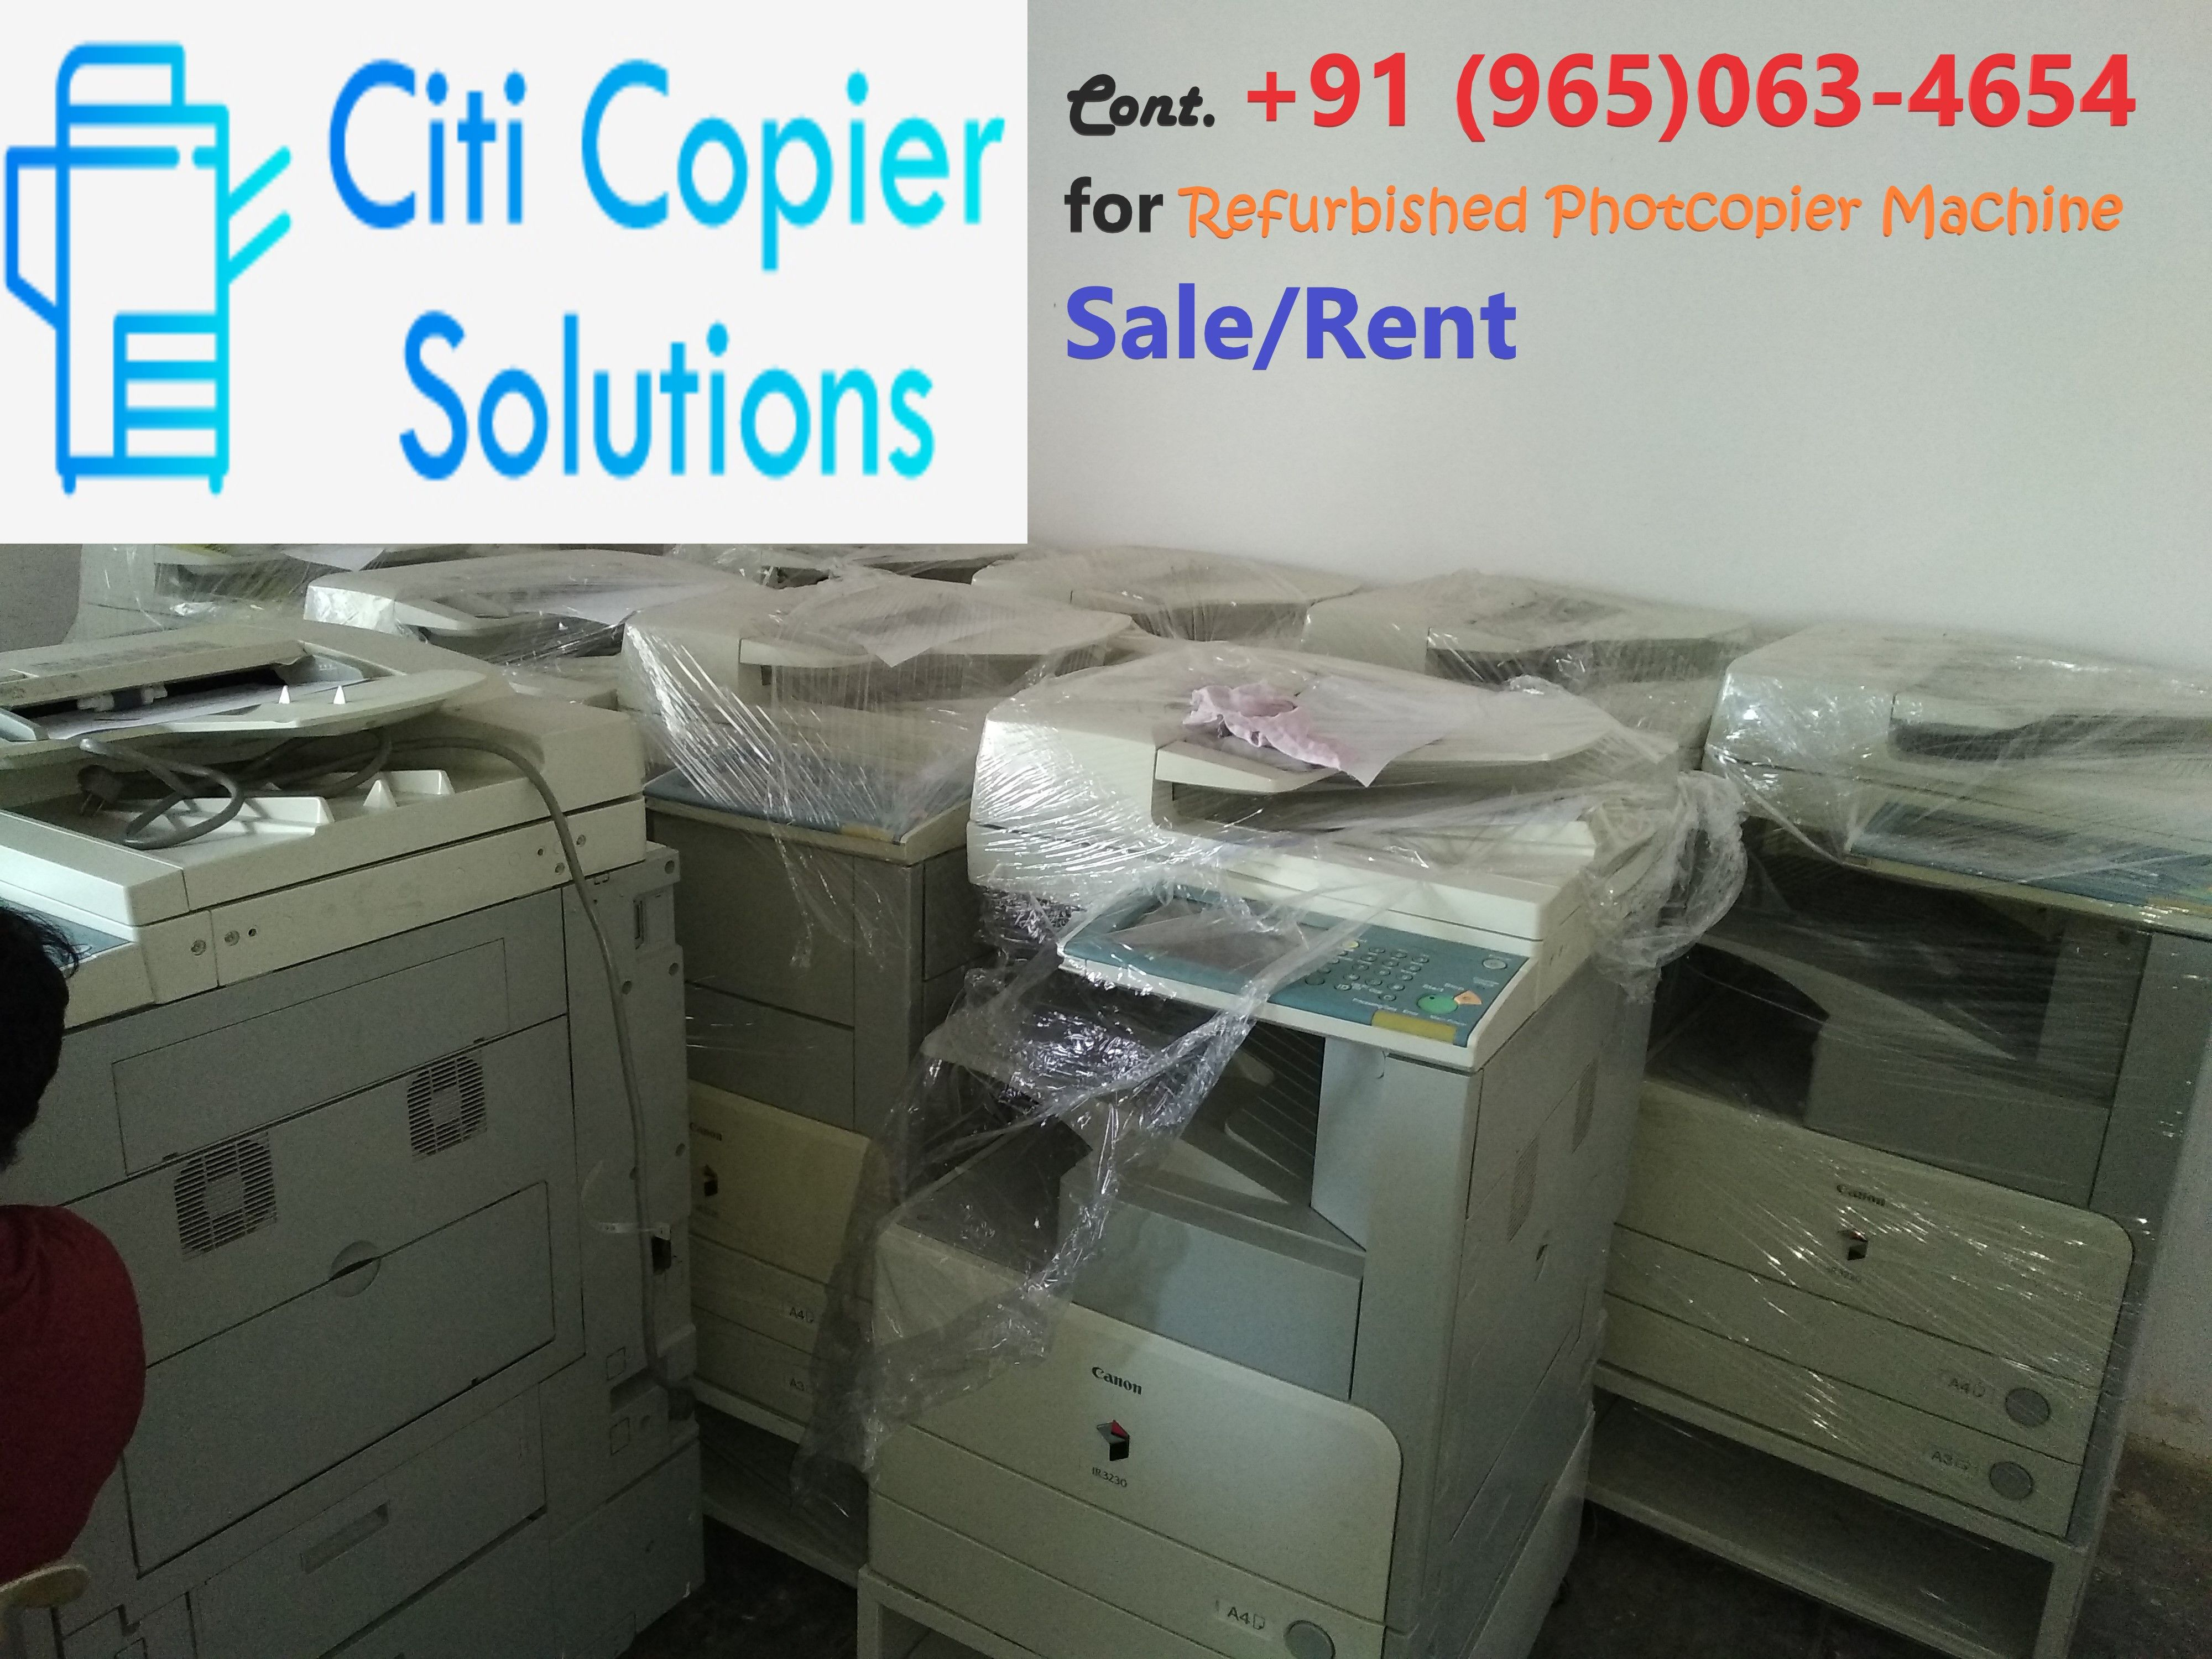 Canon Imagerunner 2270 Multifunction Printer Machine Are Widely